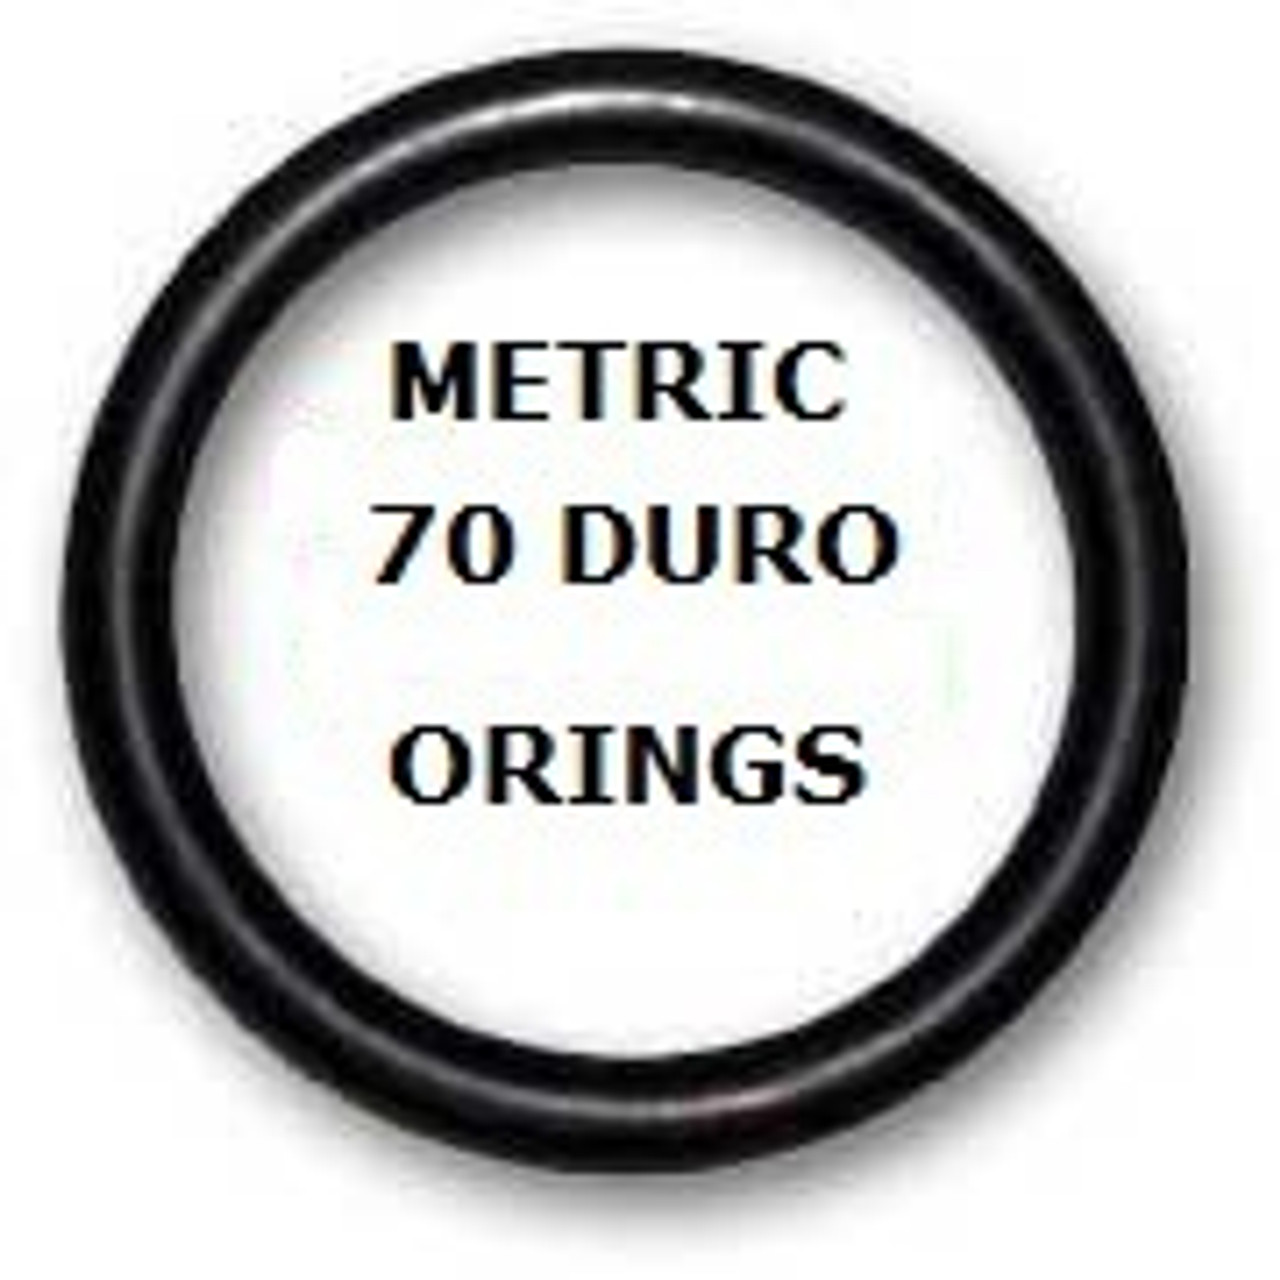 Metric Buna  O-rings 120 x 3.5mm  Price for 1 pc